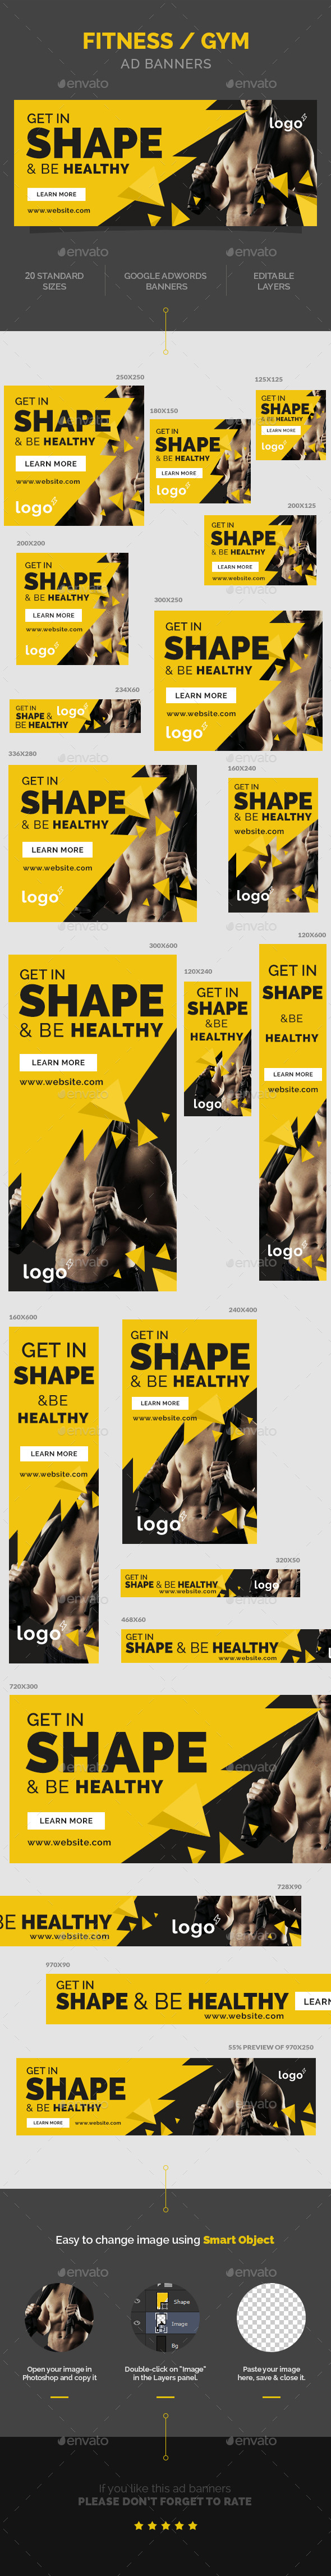 Fitness / Gym Ad Banners - Banners & Ads Web Elements